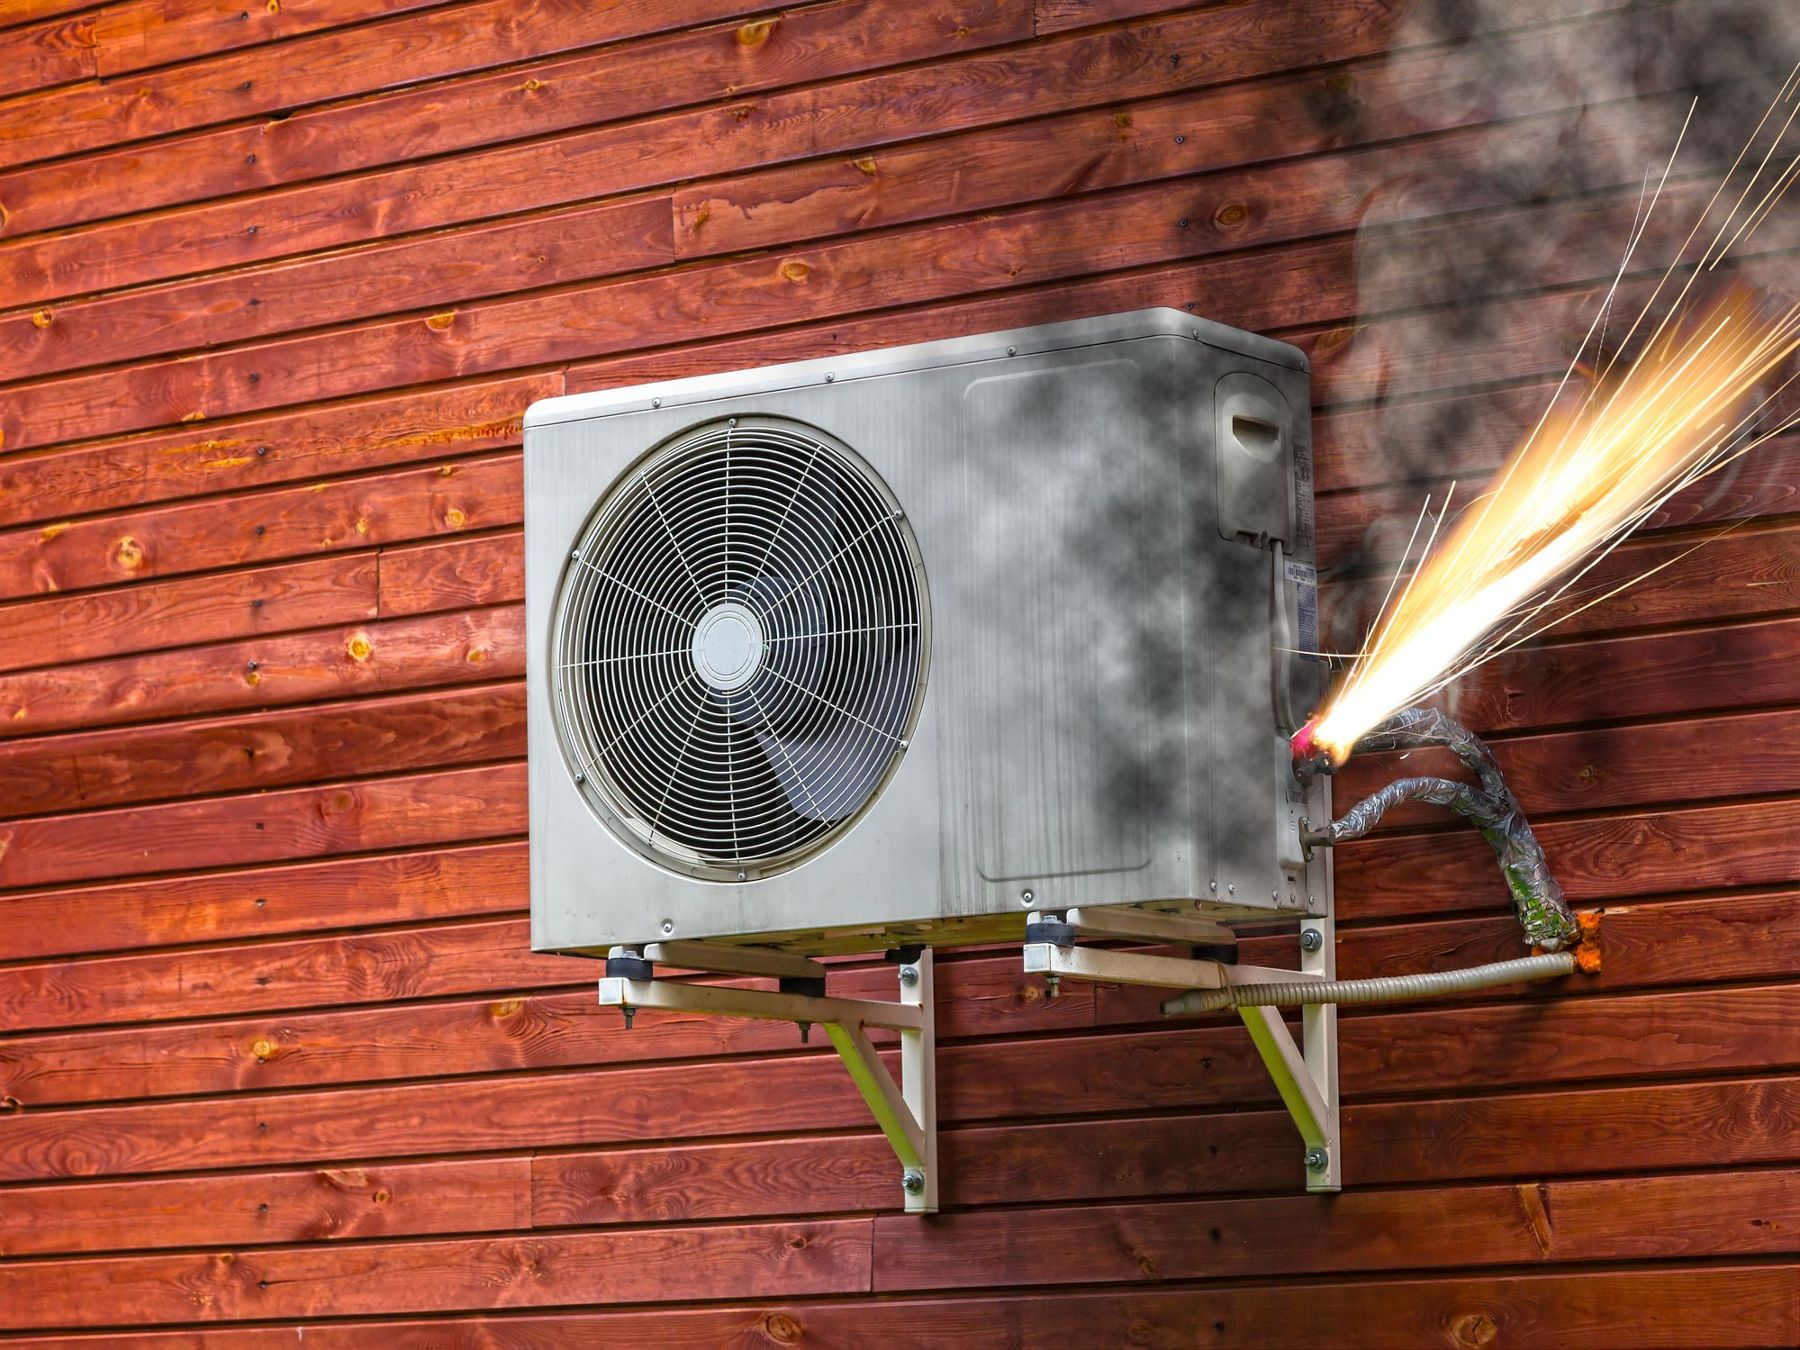 Can A Power Surge Damage My Air Conditioner Or Furnace?